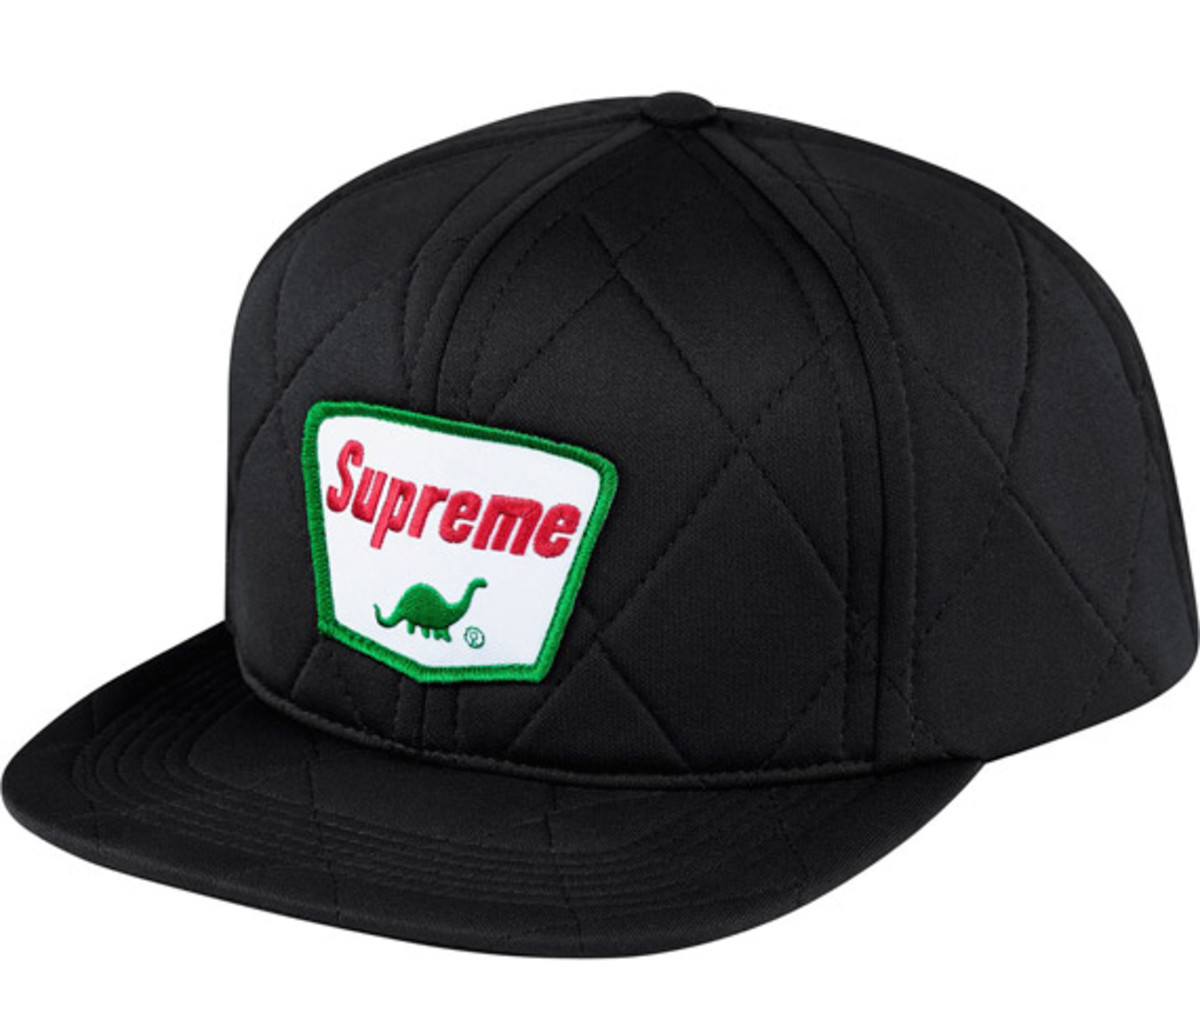 supreme-quilted-foam-6-panel-snapback-caps-01